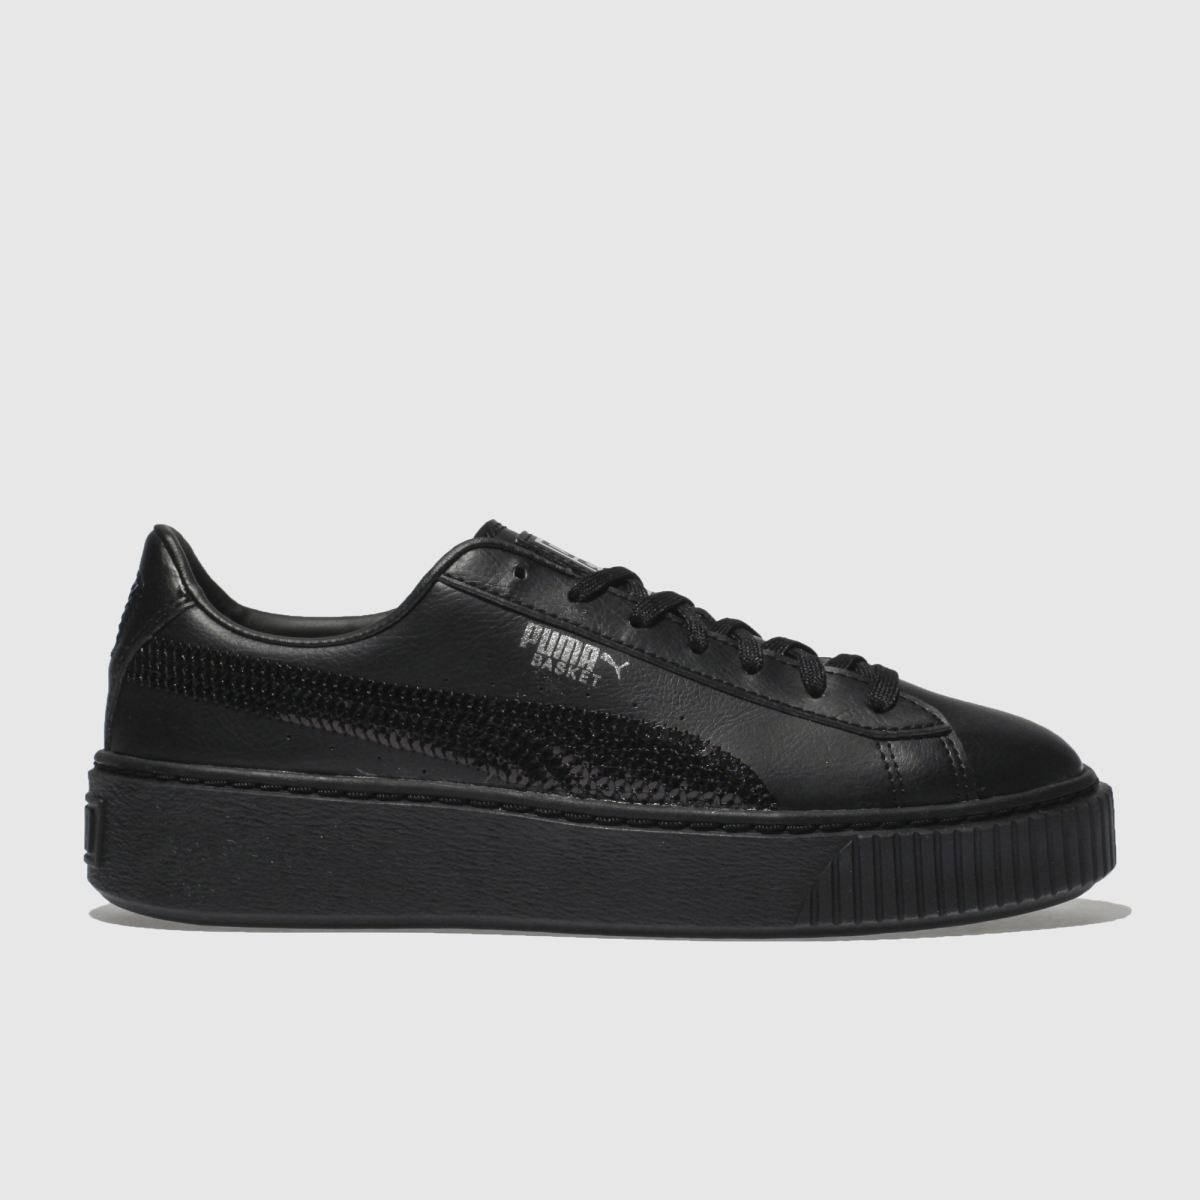 Puma Black Basket Platform Bling Girls Youth Youth